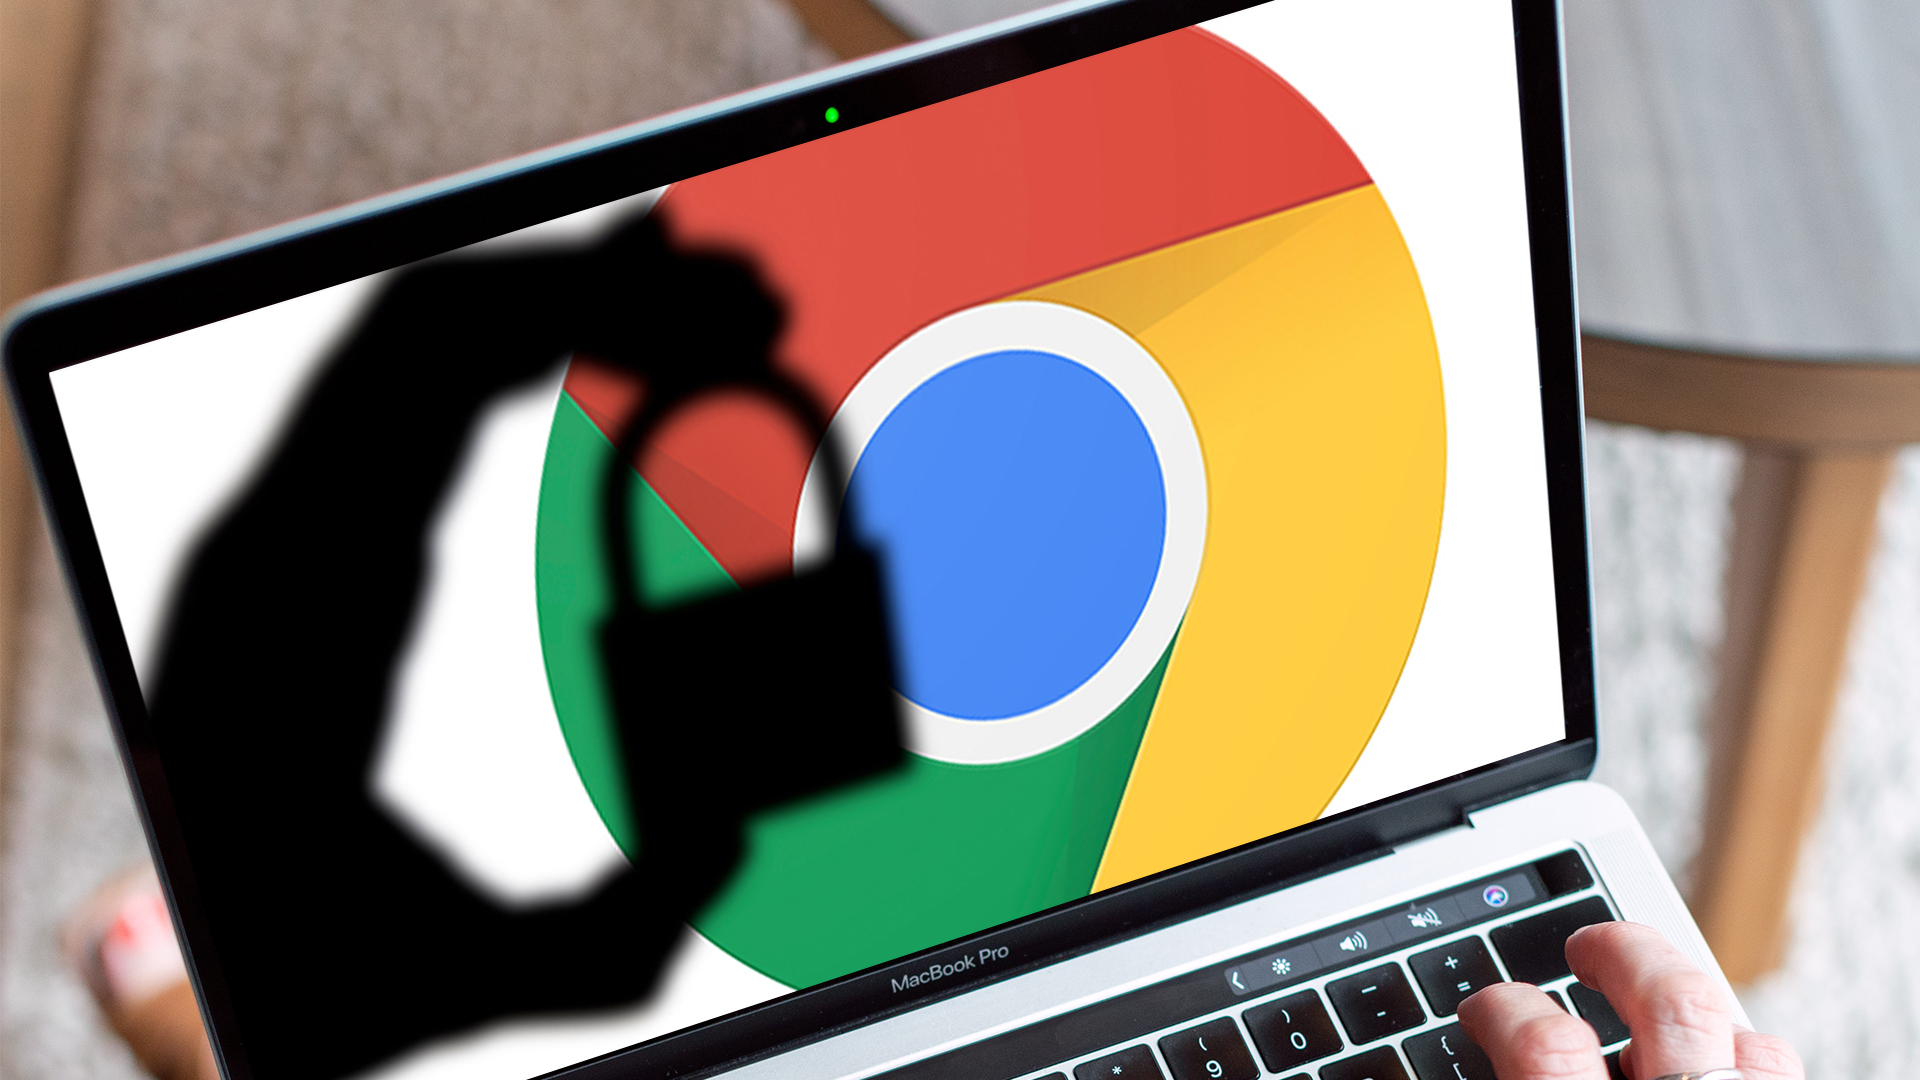 Q2 saw a rise in exploitation of Chrome browser, Windows 10 zero day vulnerabilities